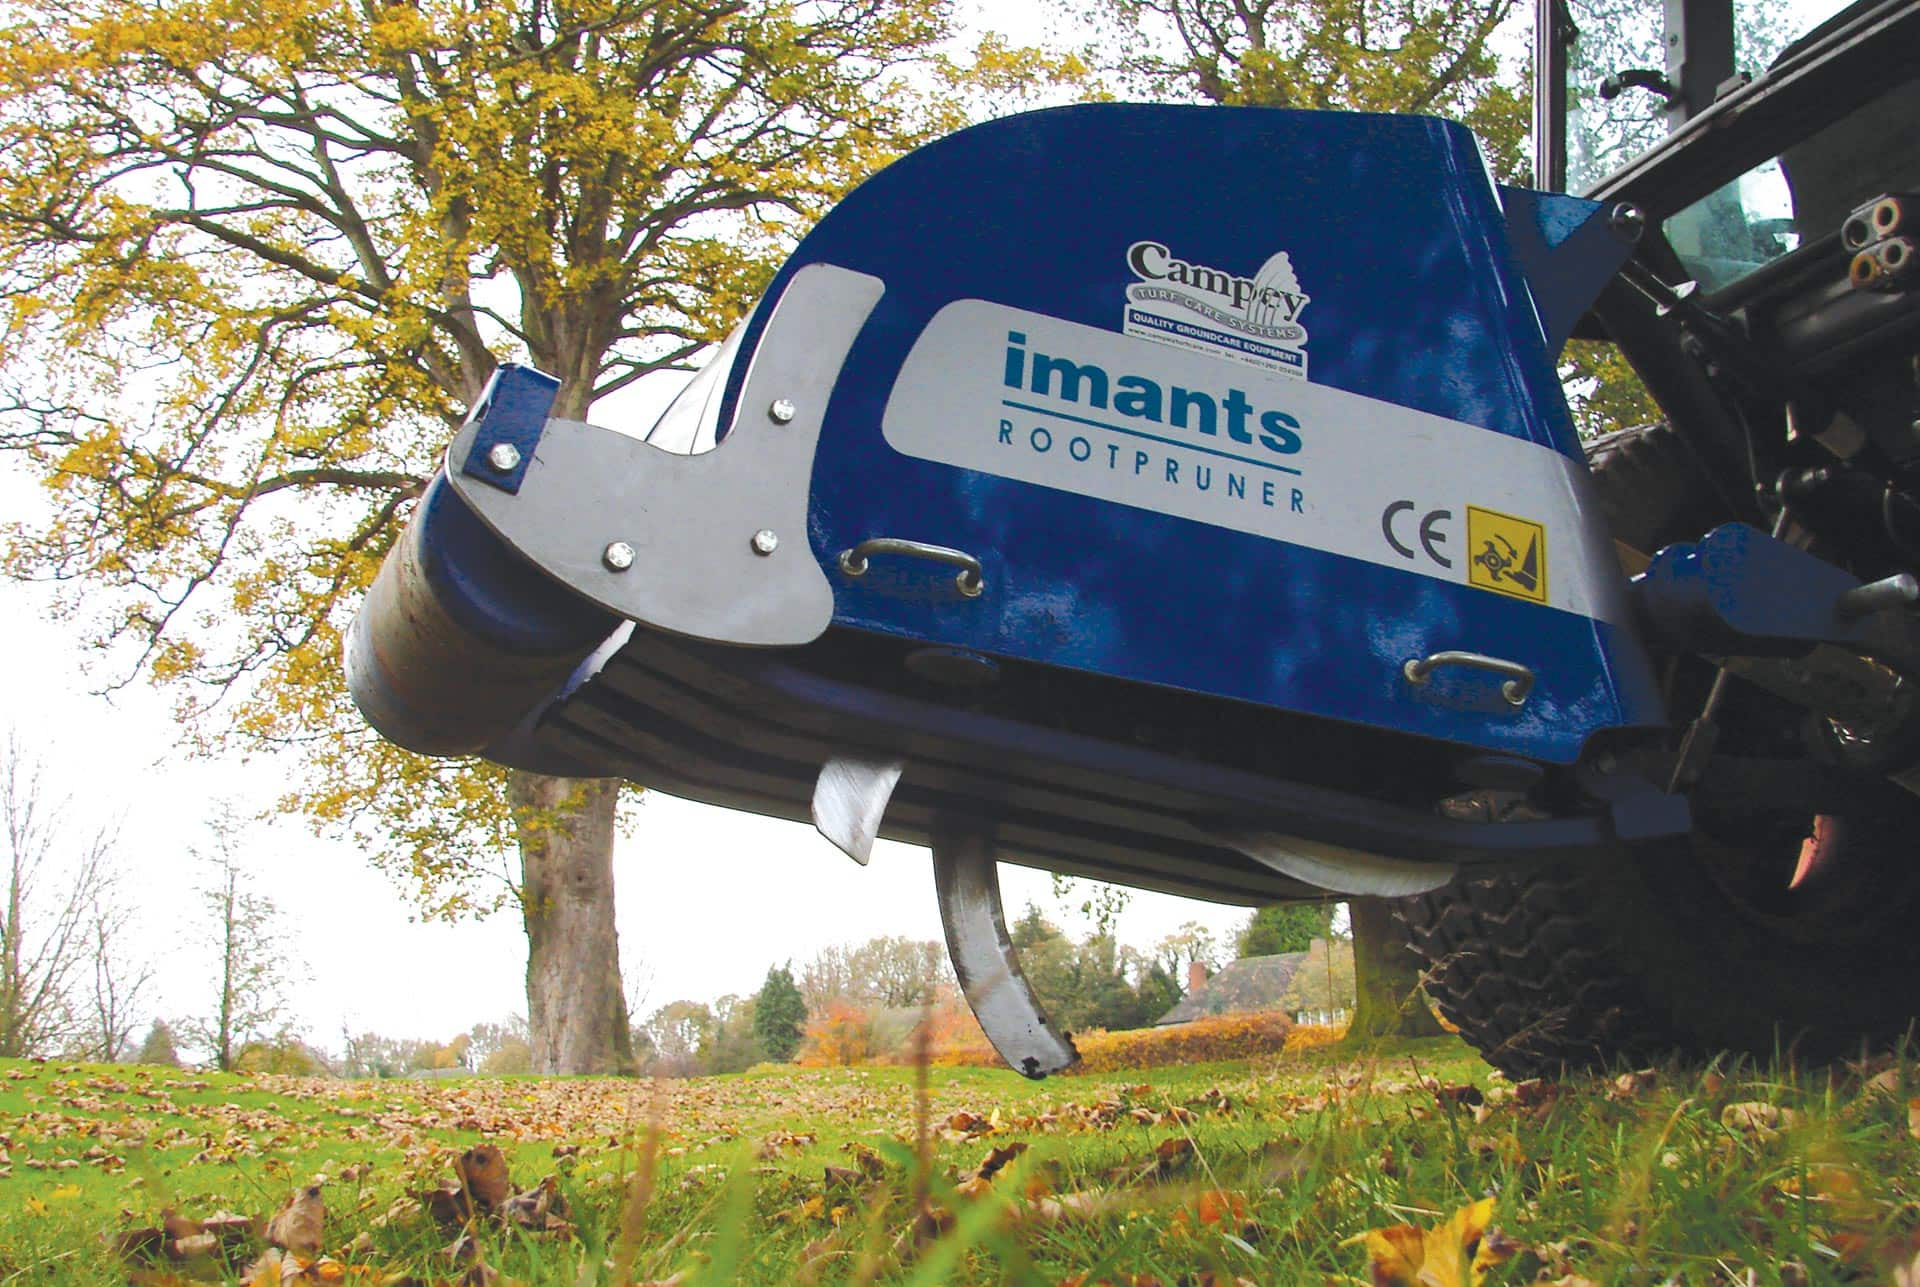 Imants Rootpruner Campey Turf Care Systems